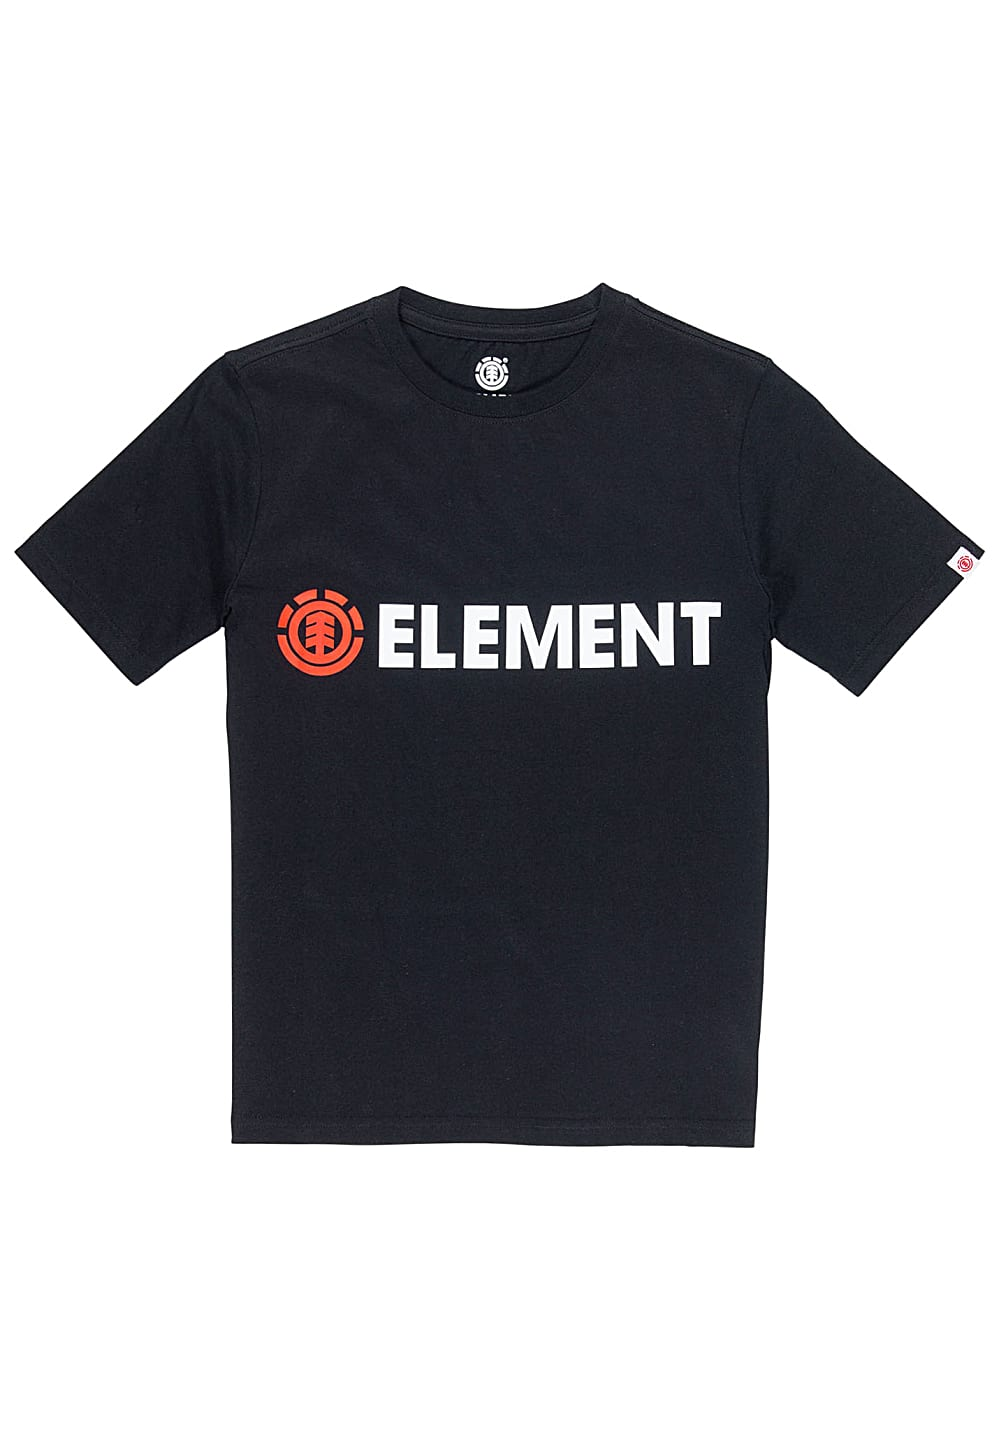 Boysoberteile - Element Blazin T-Shirt für Jungs Schwarz - Onlineshop Planet Sports